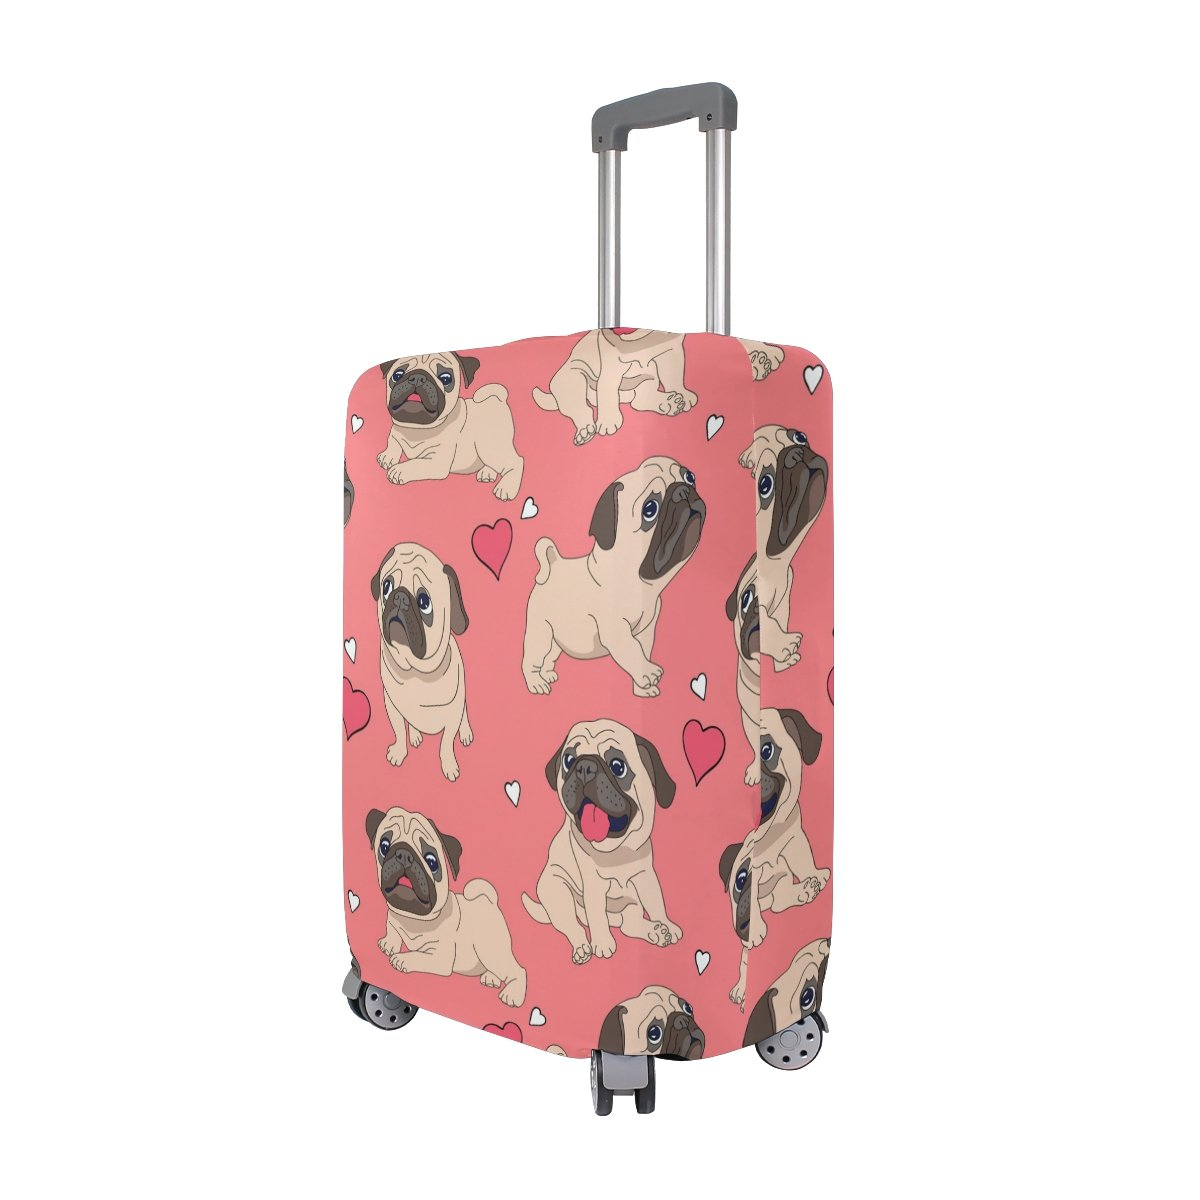 Cute Dog Puppy Love Heart Suitcase Luggage Cover Protector for Travel Kids Men Women by ALAZA (Image #1)